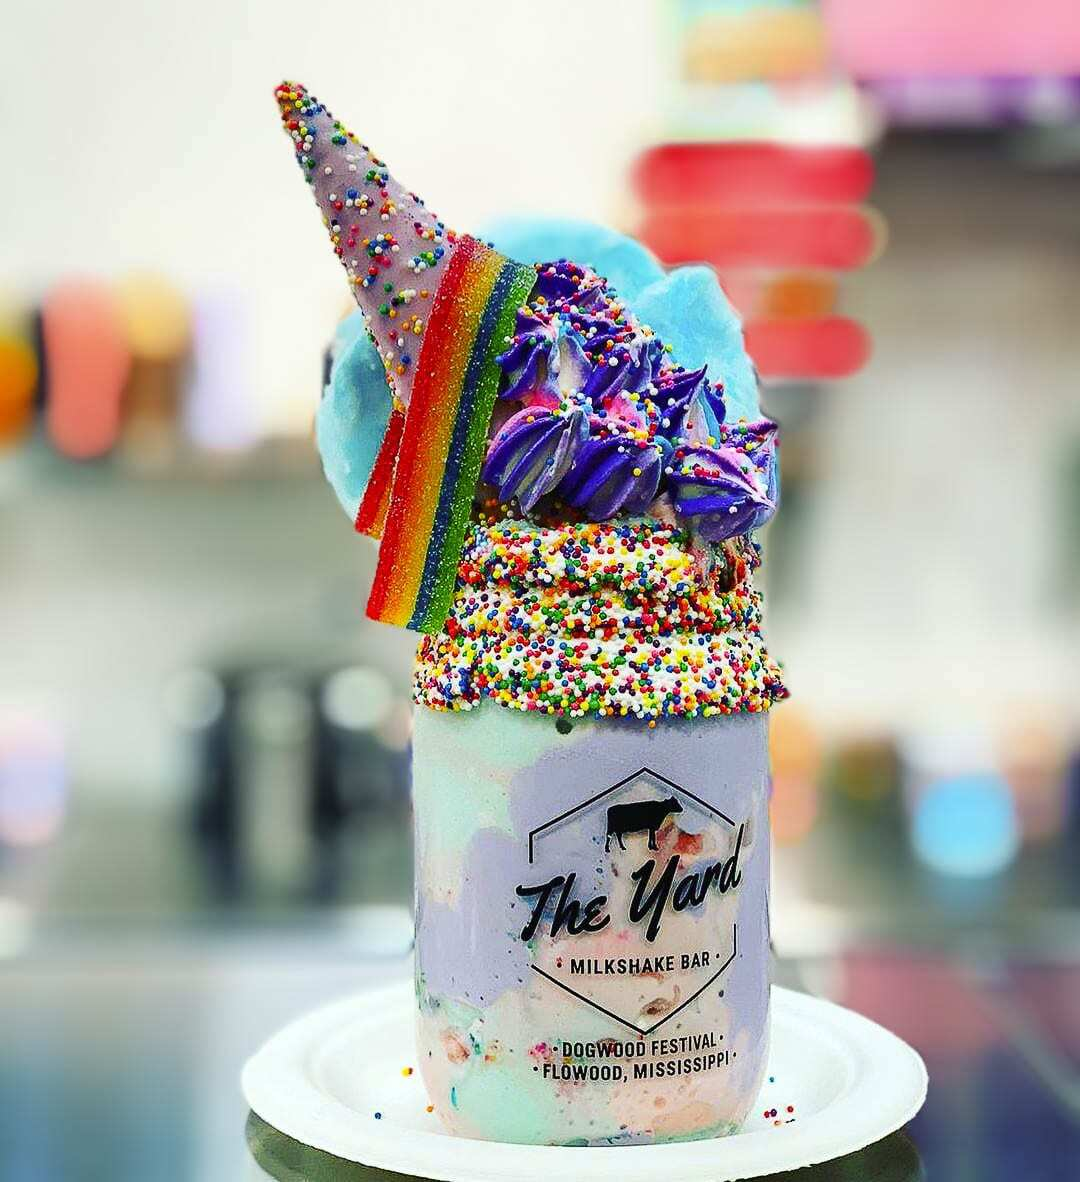 High-end ice cream shop The Yard is coming to the Vancouver Waterfront this Summer. Image courtesy The Yard Milkshake Bar